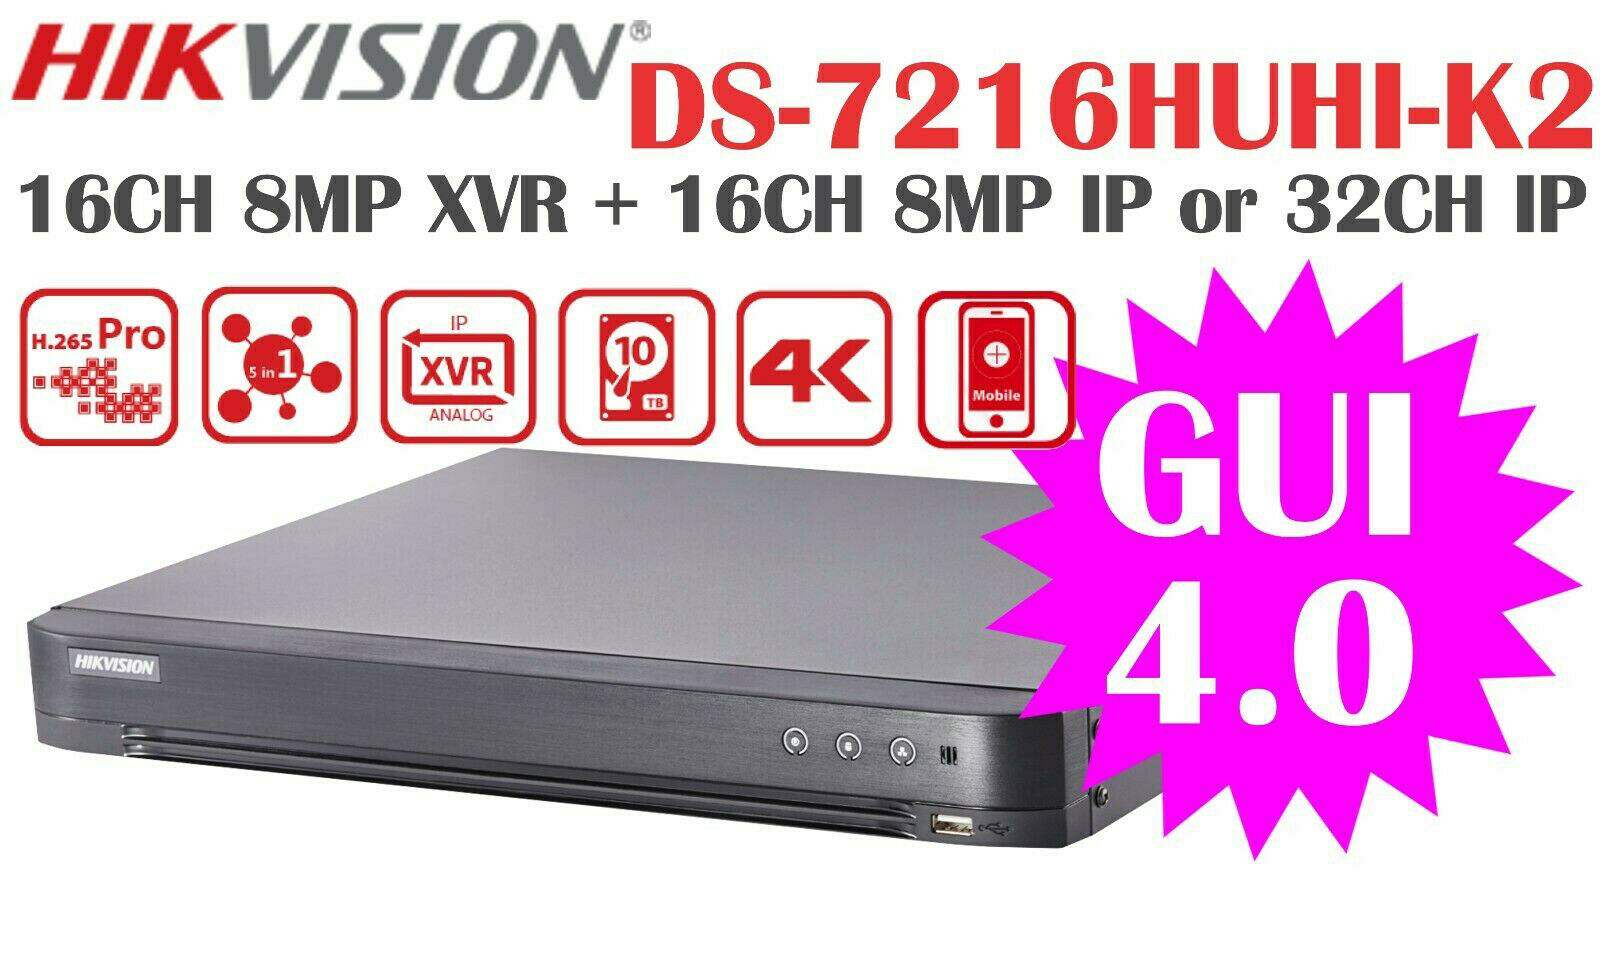 Hikvision 8MP DVR 16CH BNC+16CH IP 4K HDMI NEW GUI4.0 DS-721